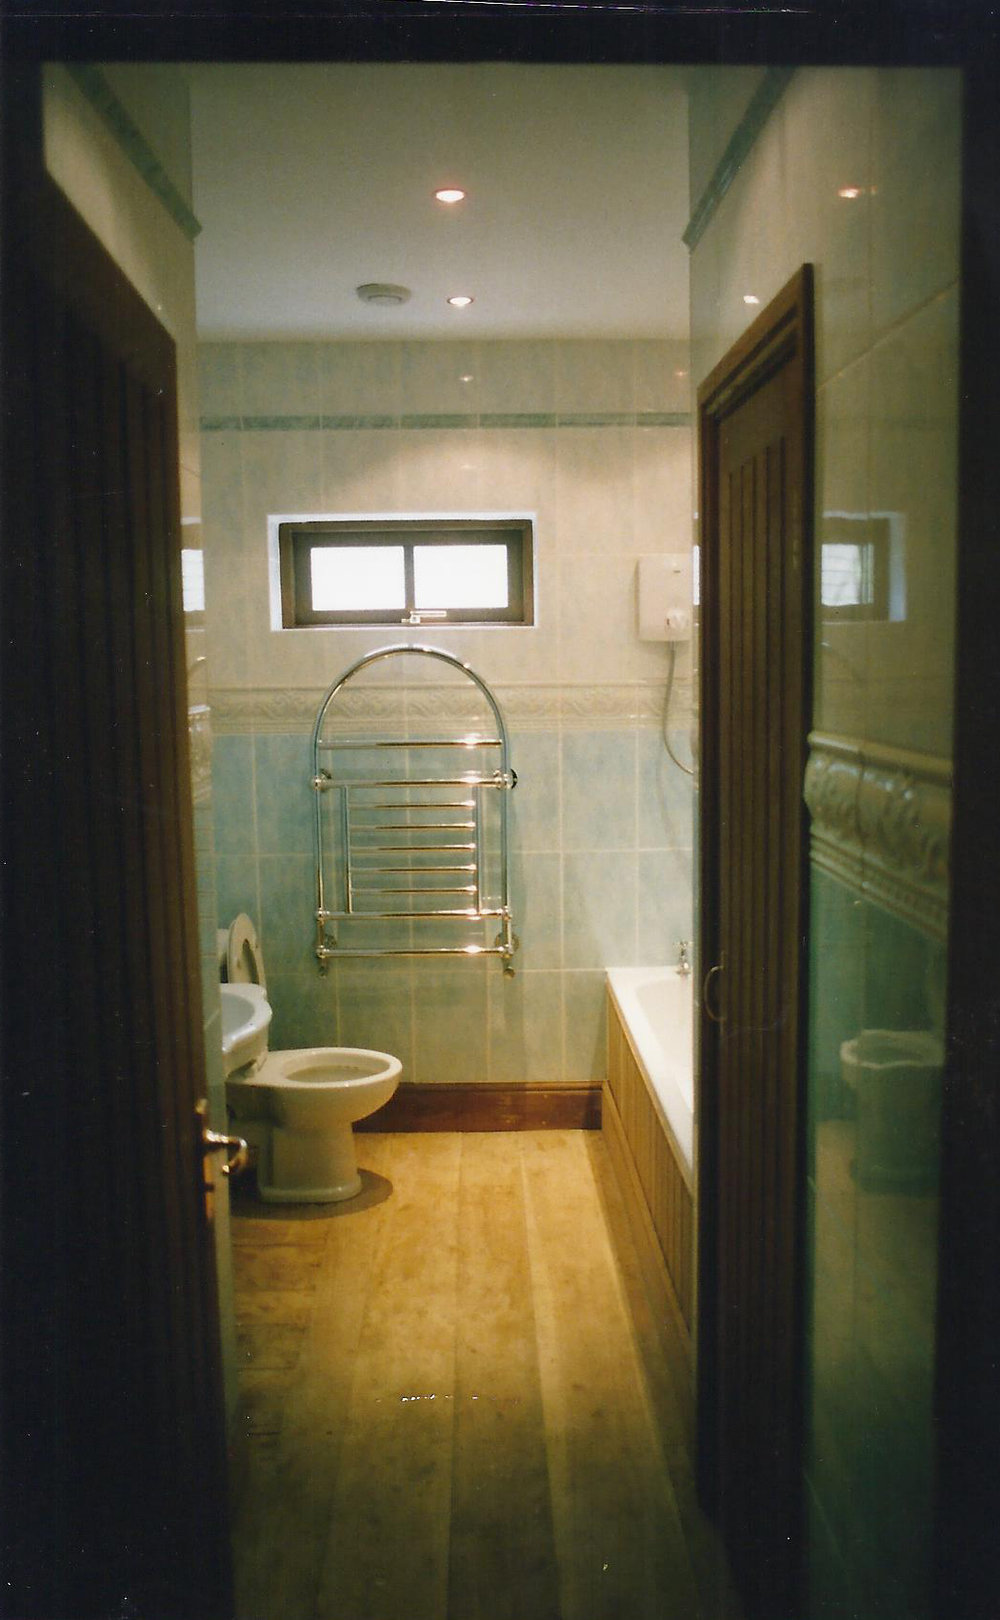 Bathroom Image 1 - North End Farm - East Yorkshire Architects - Samuel Kendall Associates